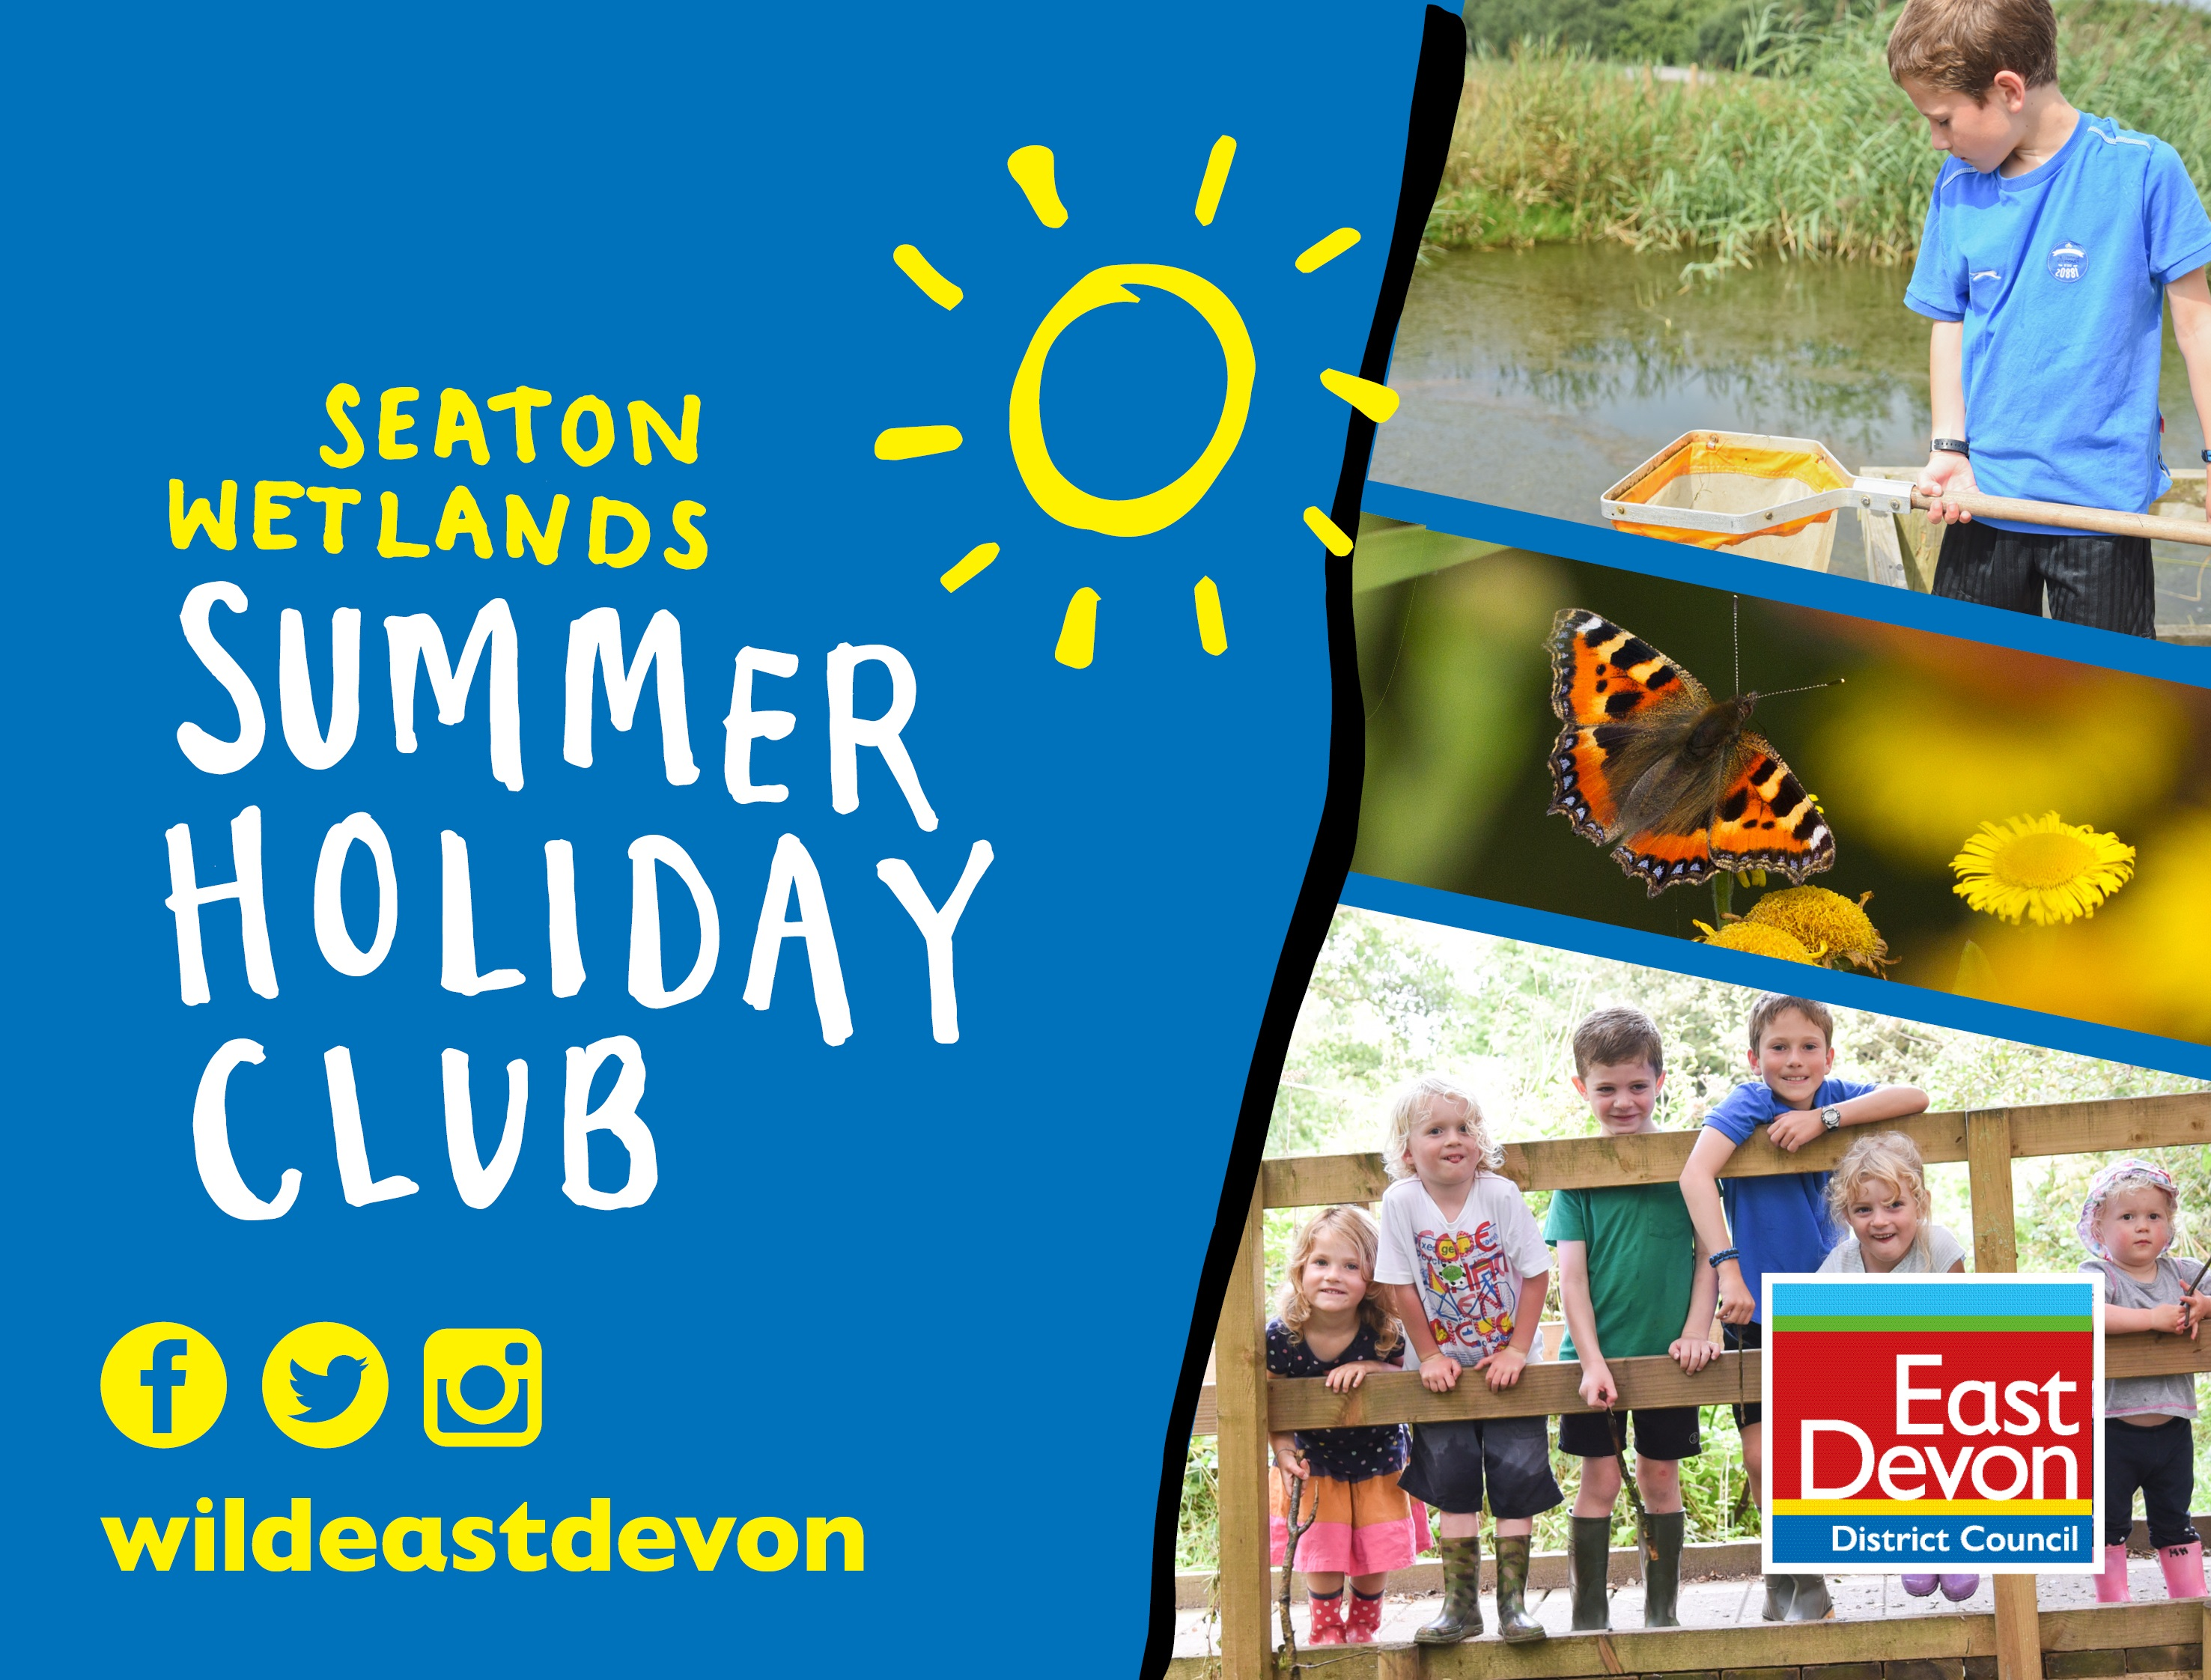 Seaton Wetlands Summer Holiday Club (Tue 18 to Fri 21 Aug)